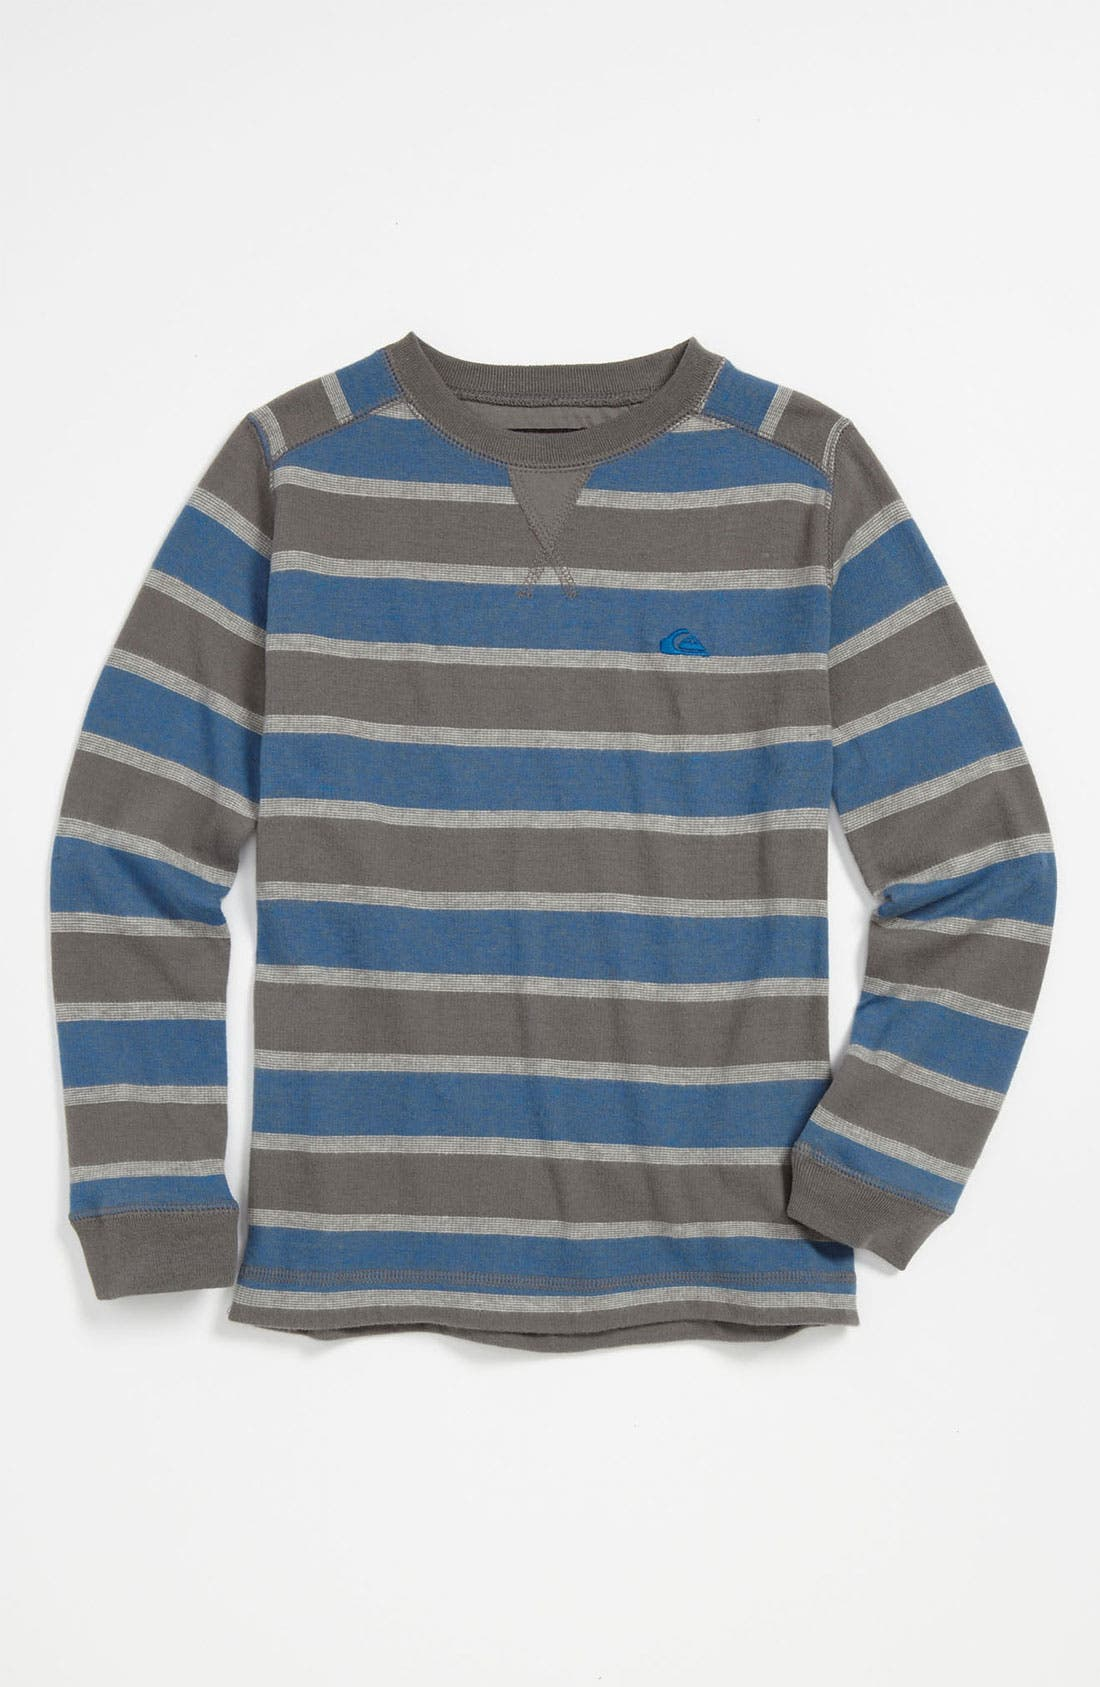 Main Image - Quiksilver 'Snitty' Thermal Shirt (Toddler)